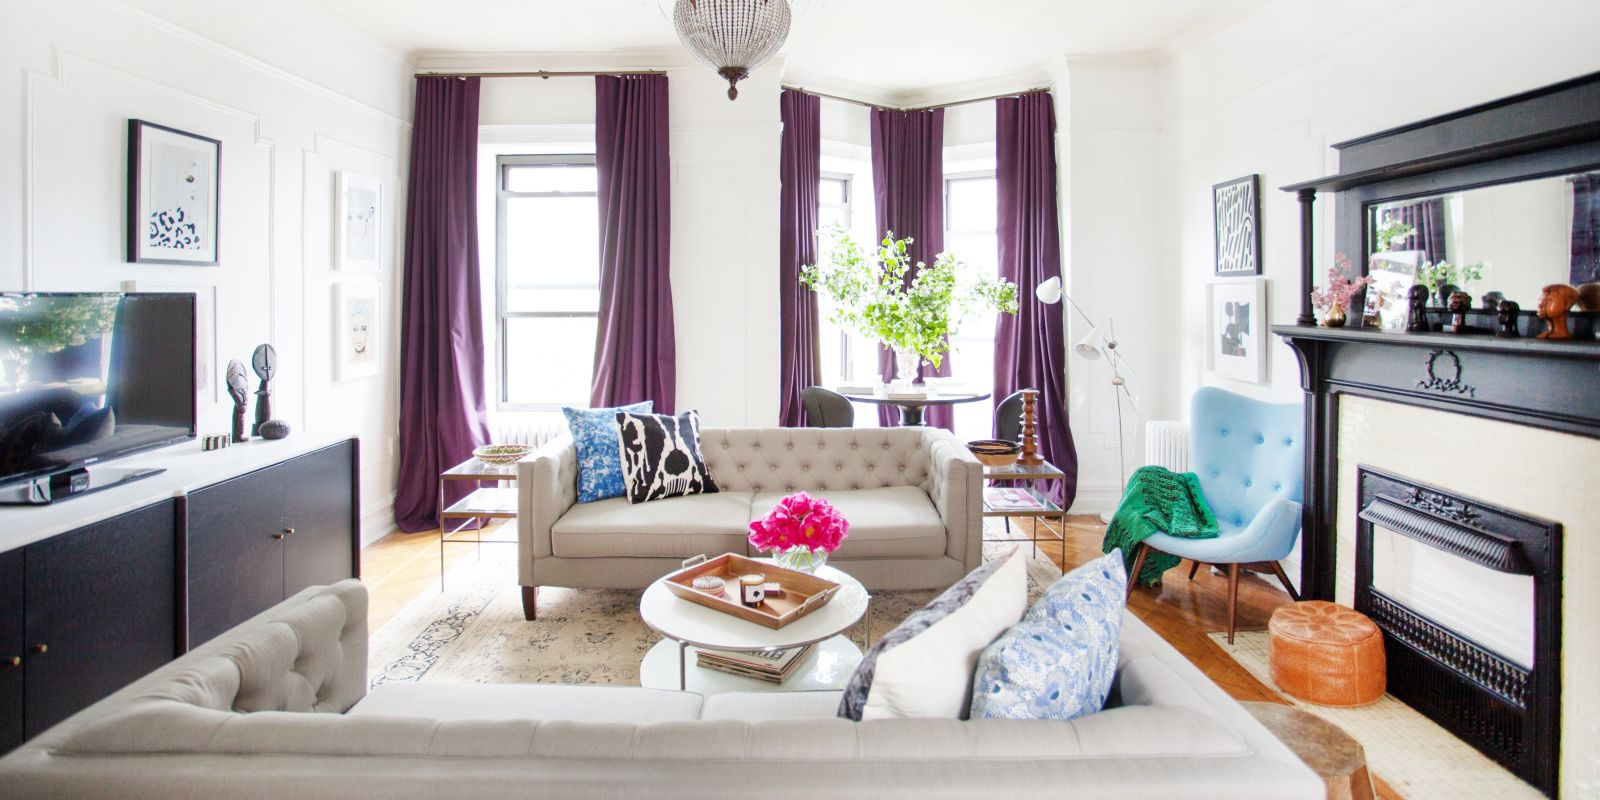 House Tour A Pair Of Philly Transplants Make A Cozy Home